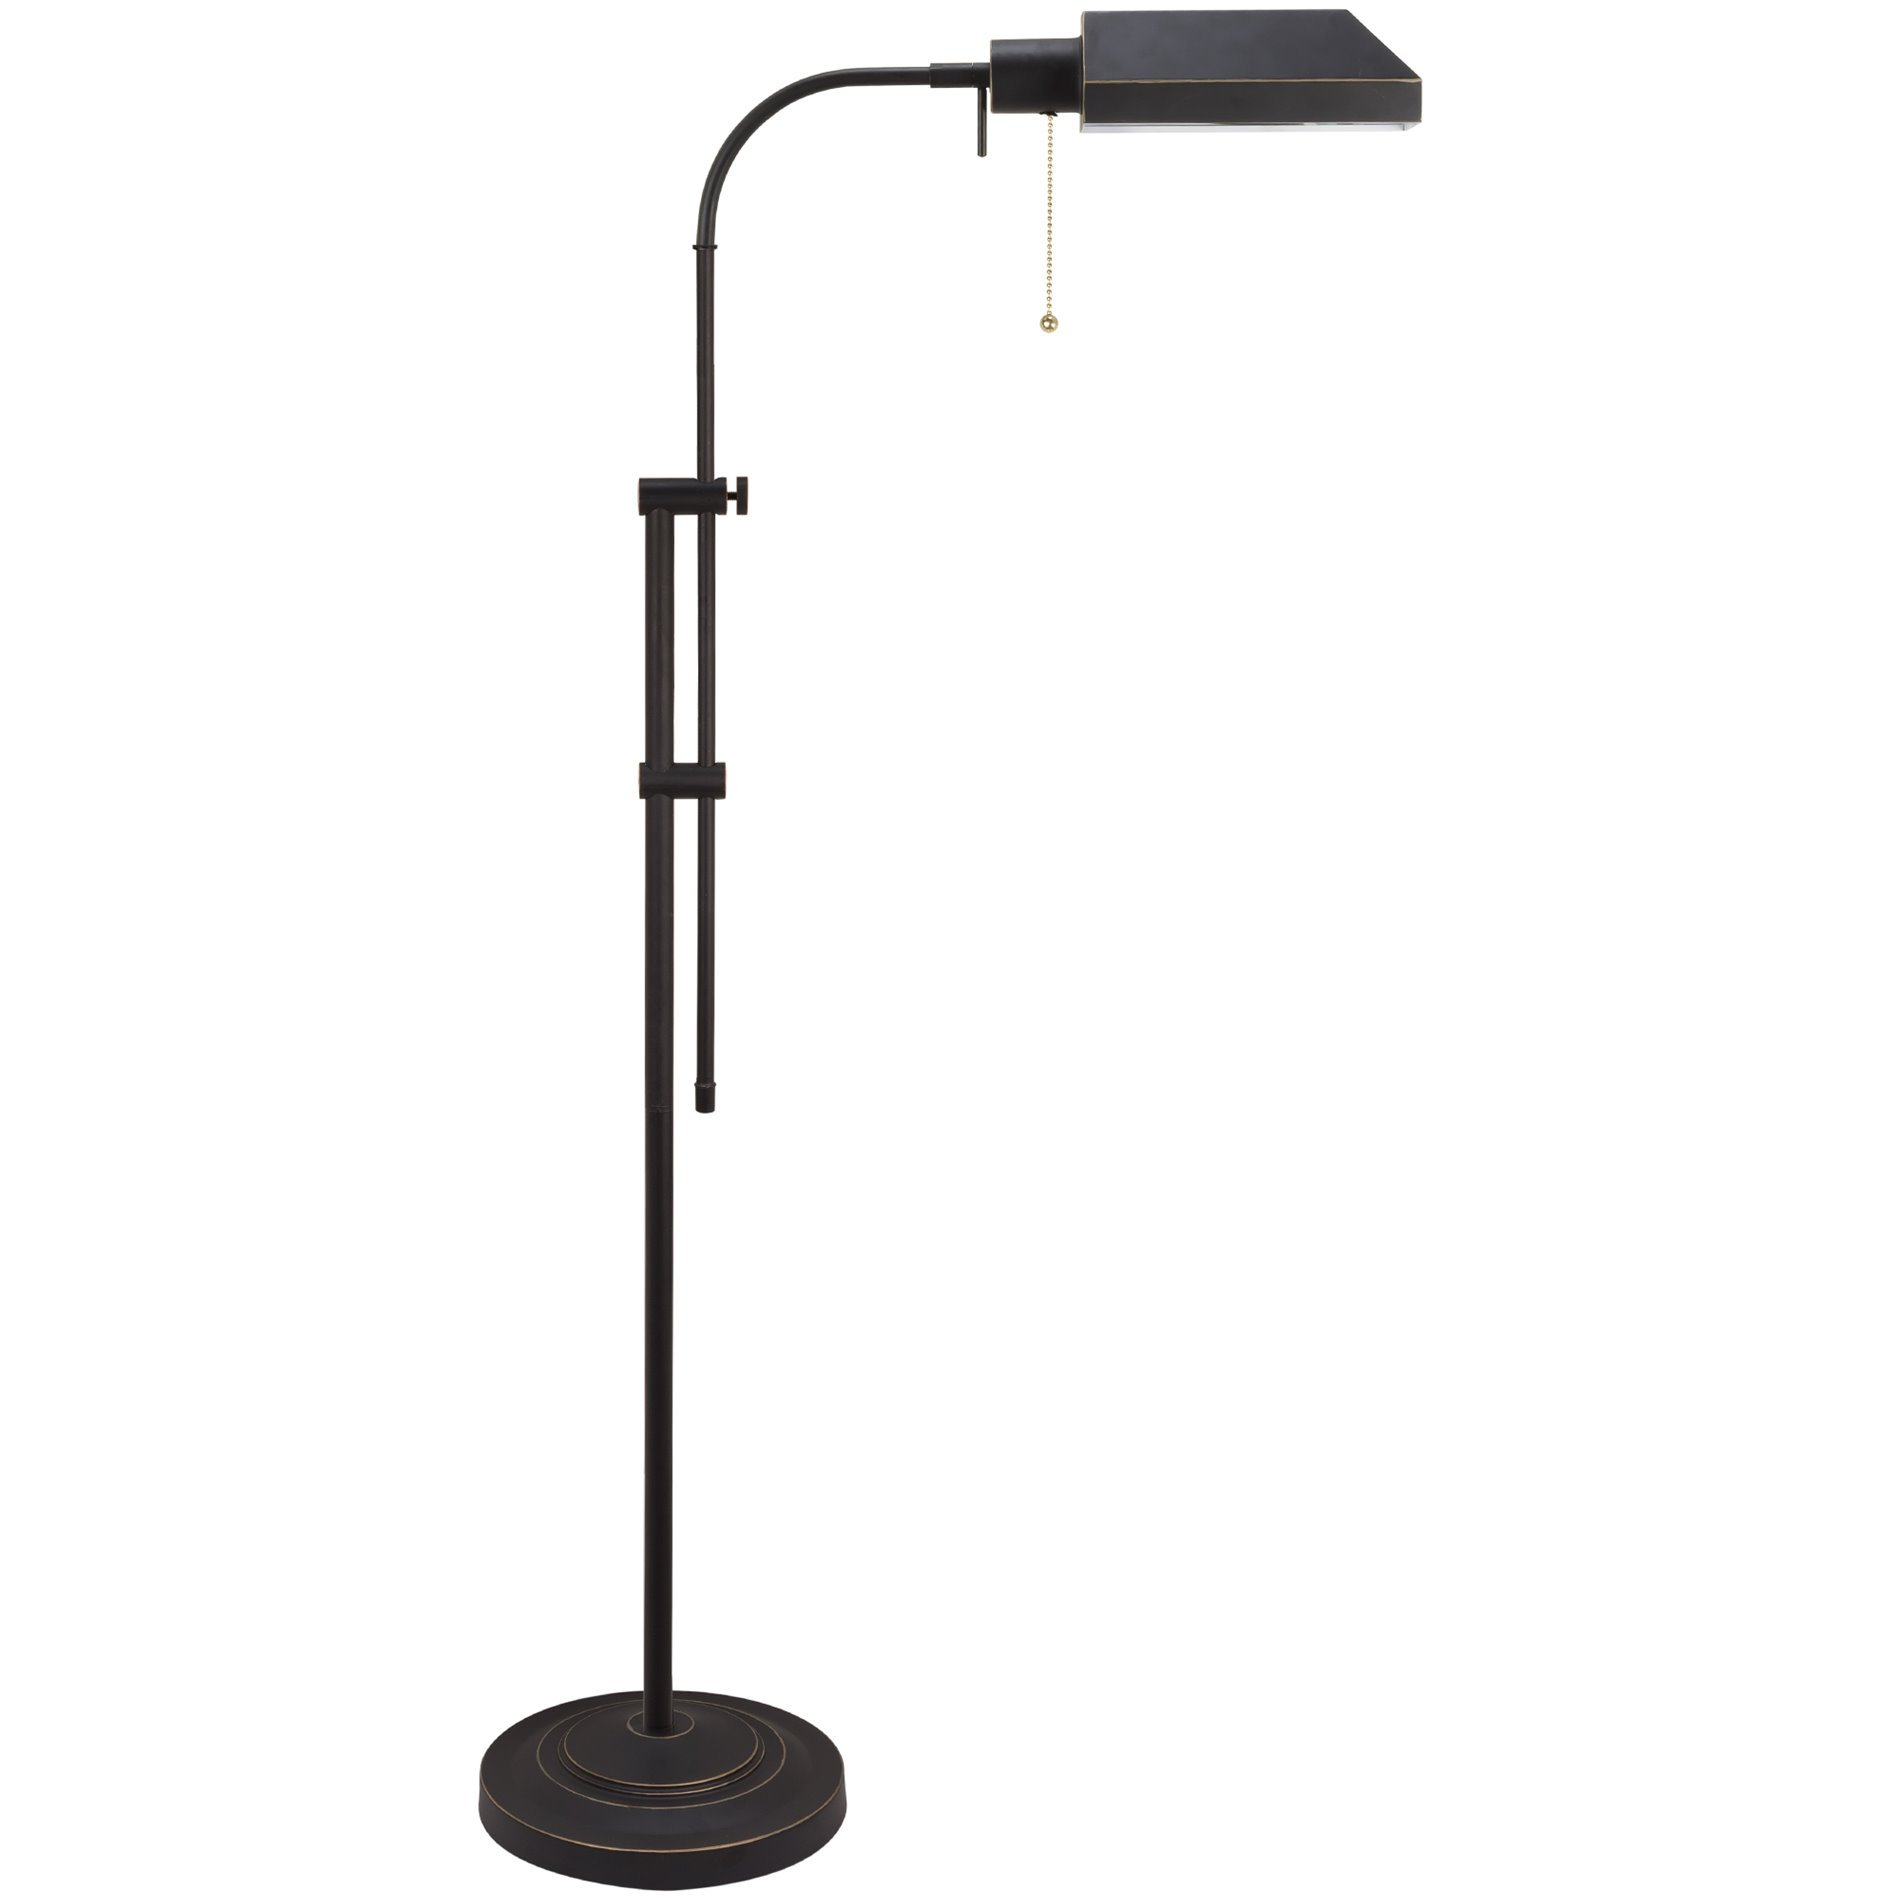 Kira Home Prescott 58'' Adjustable Standing Pharmacy Floor Lamp, Dark Bronze Finish, Includes 6W LED Bulb (60W eq.) Energy Efficient, Eco-Friendly (Contains Minimal Blemishes/Inconsistencies)